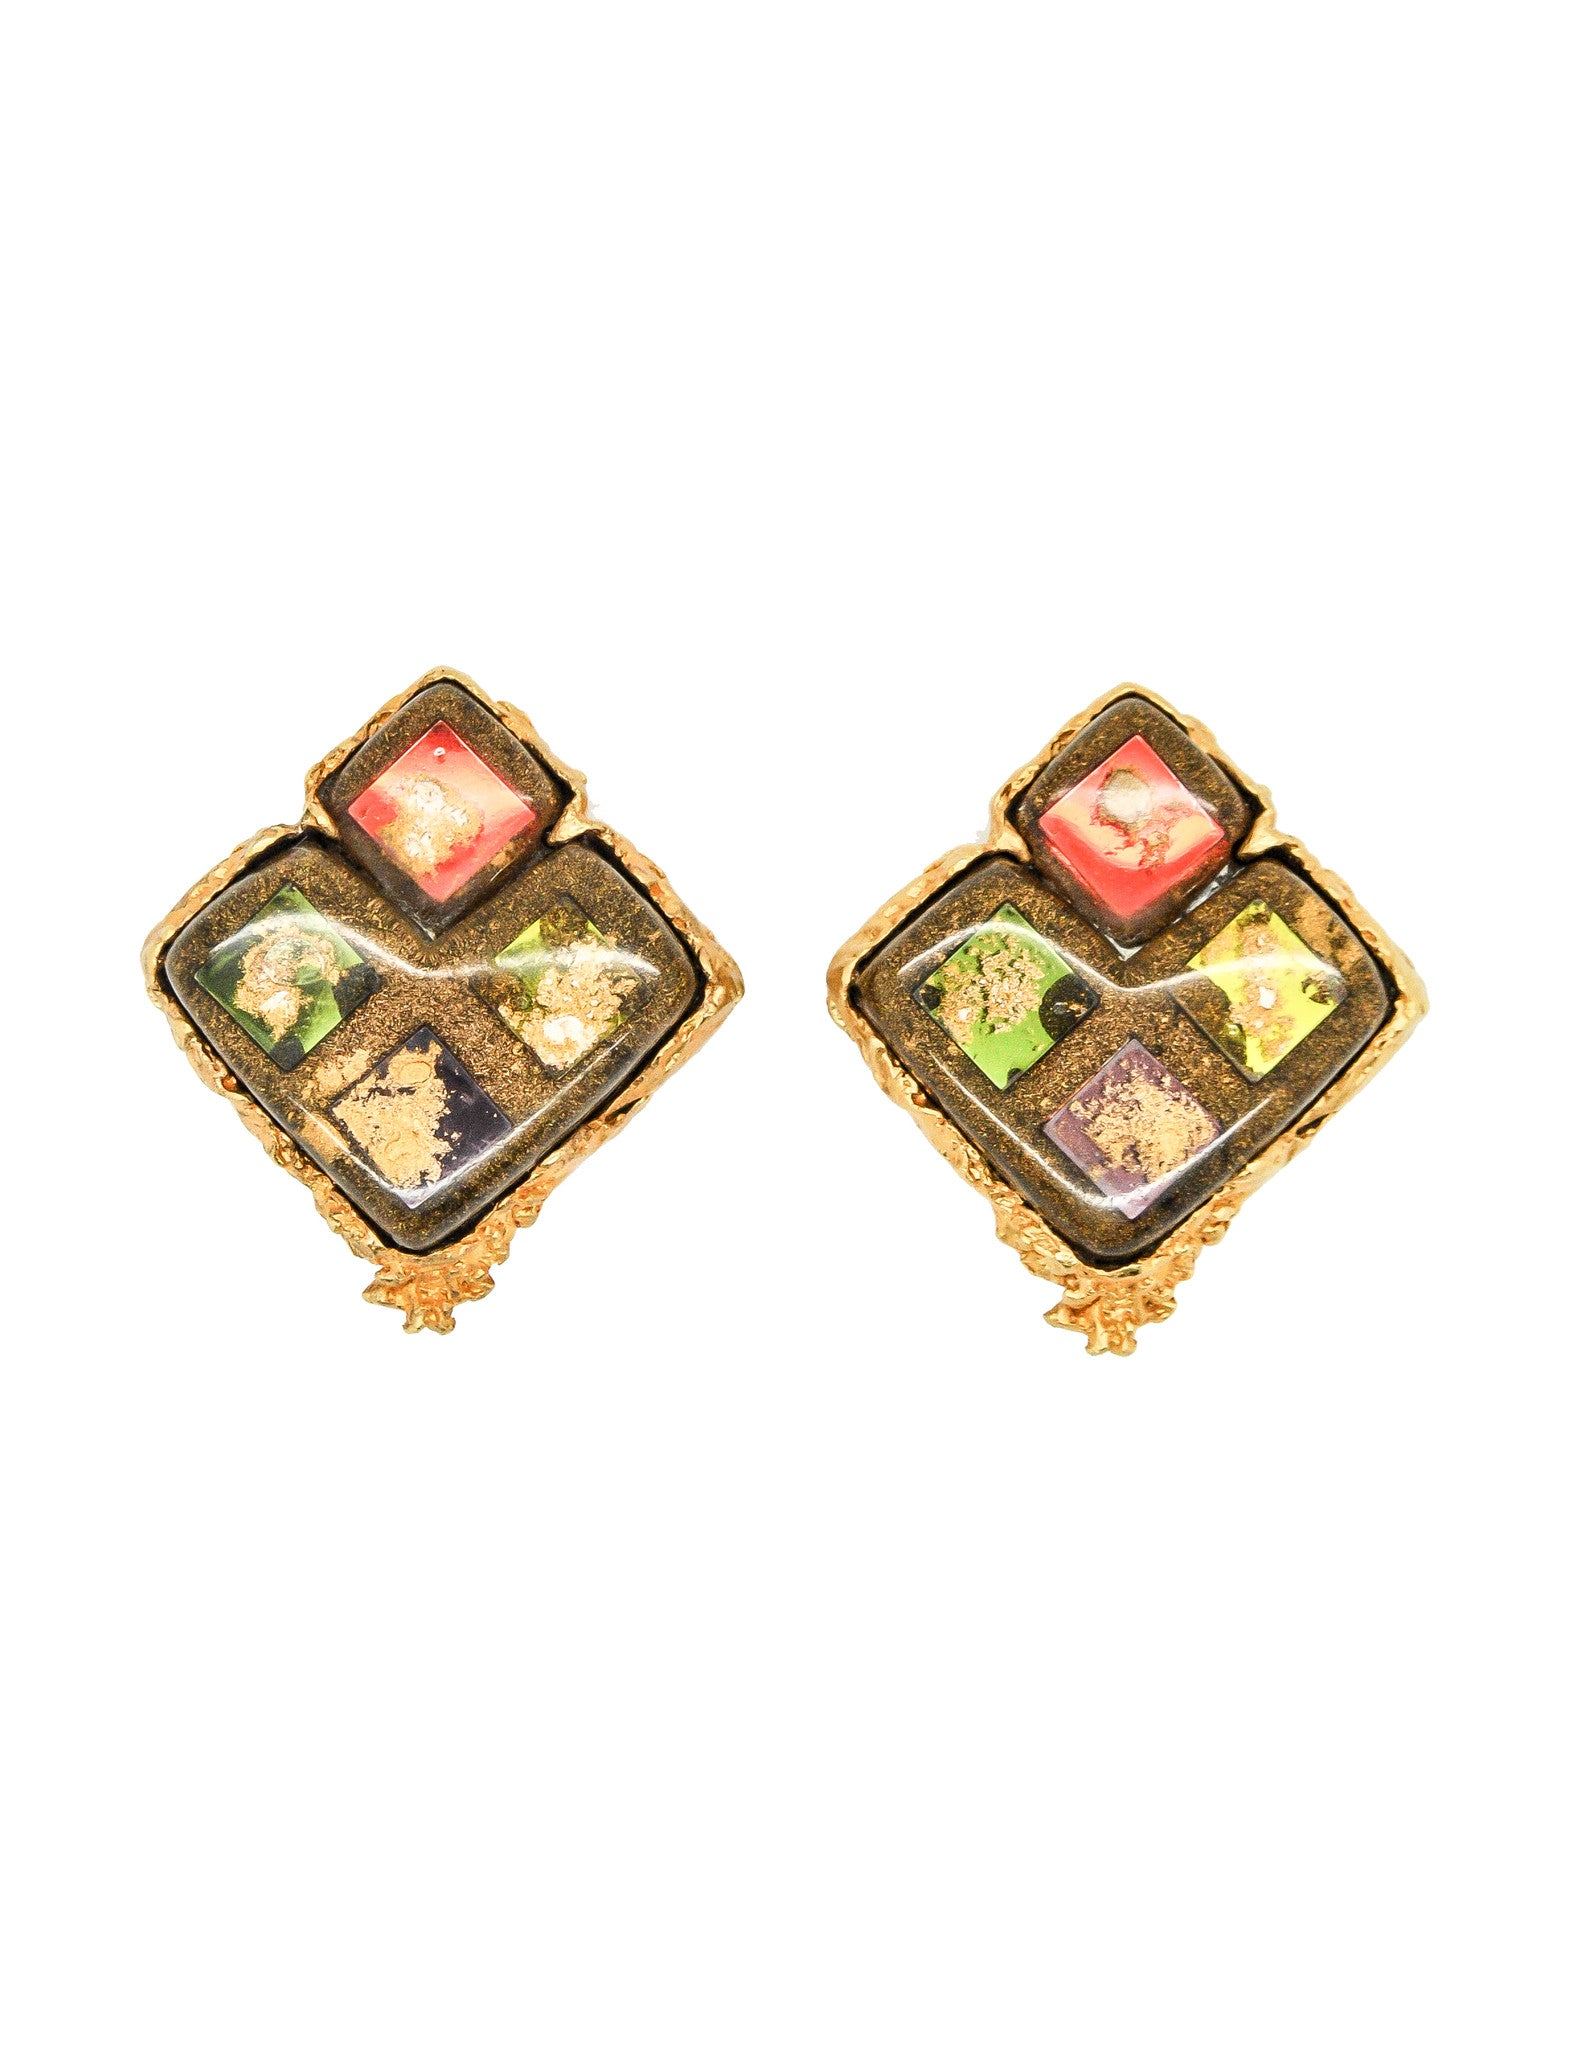 Christian Lacroix Vintage Colorful Glass Tile Earrings - Amarcord Vintage Fashion  - 1